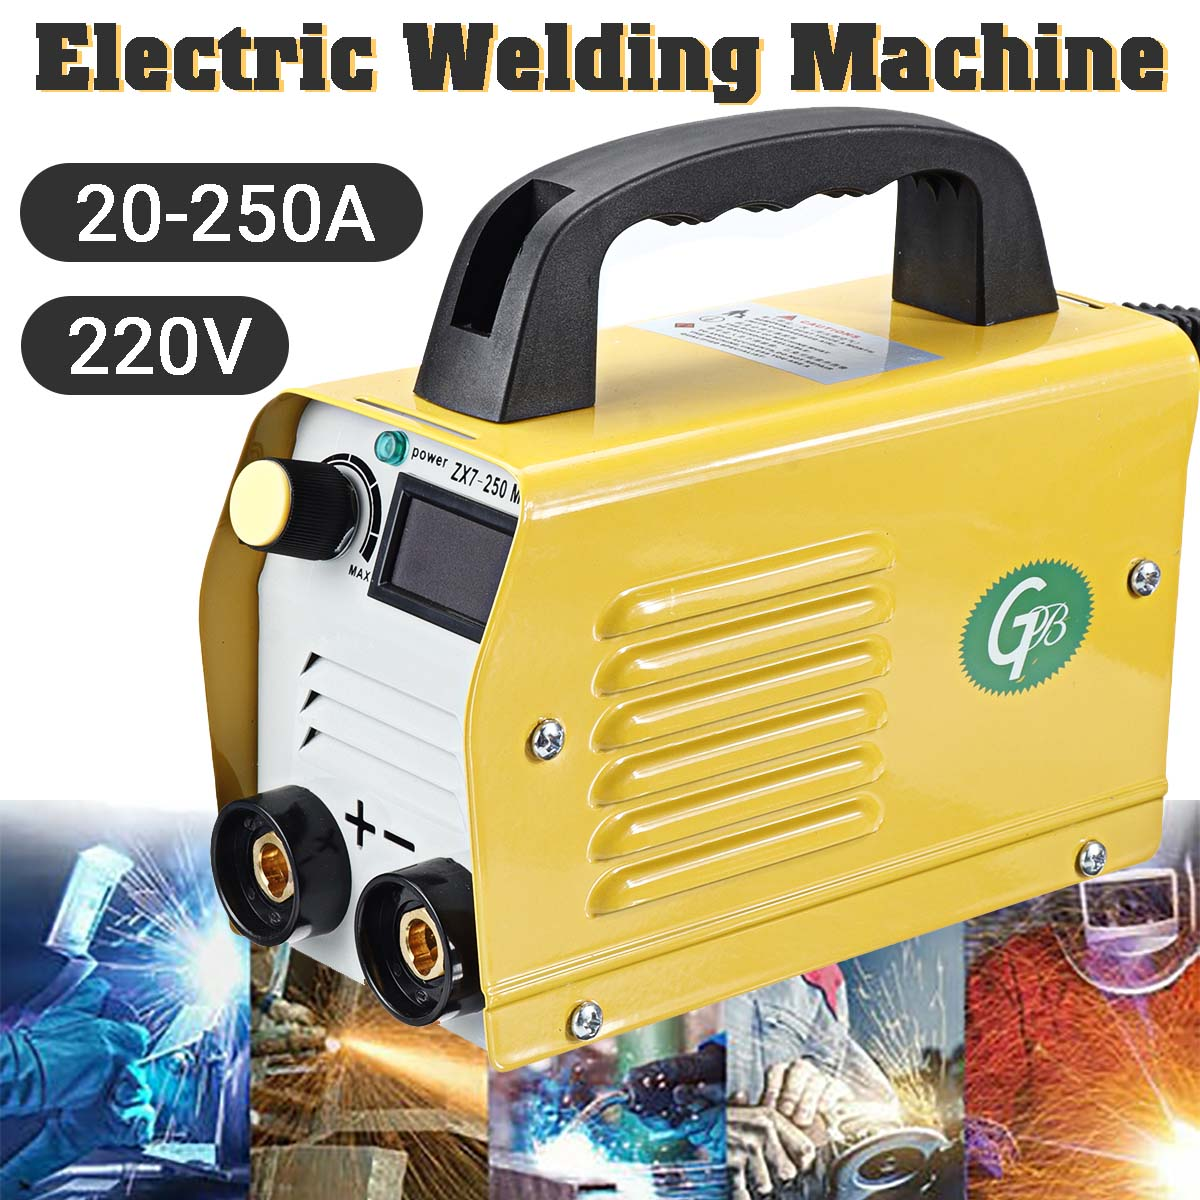 ZX7-250 20-250A Electric Welding Machine LCD Display ARC/MMA Inverter IGBT Welders Welding Equipment